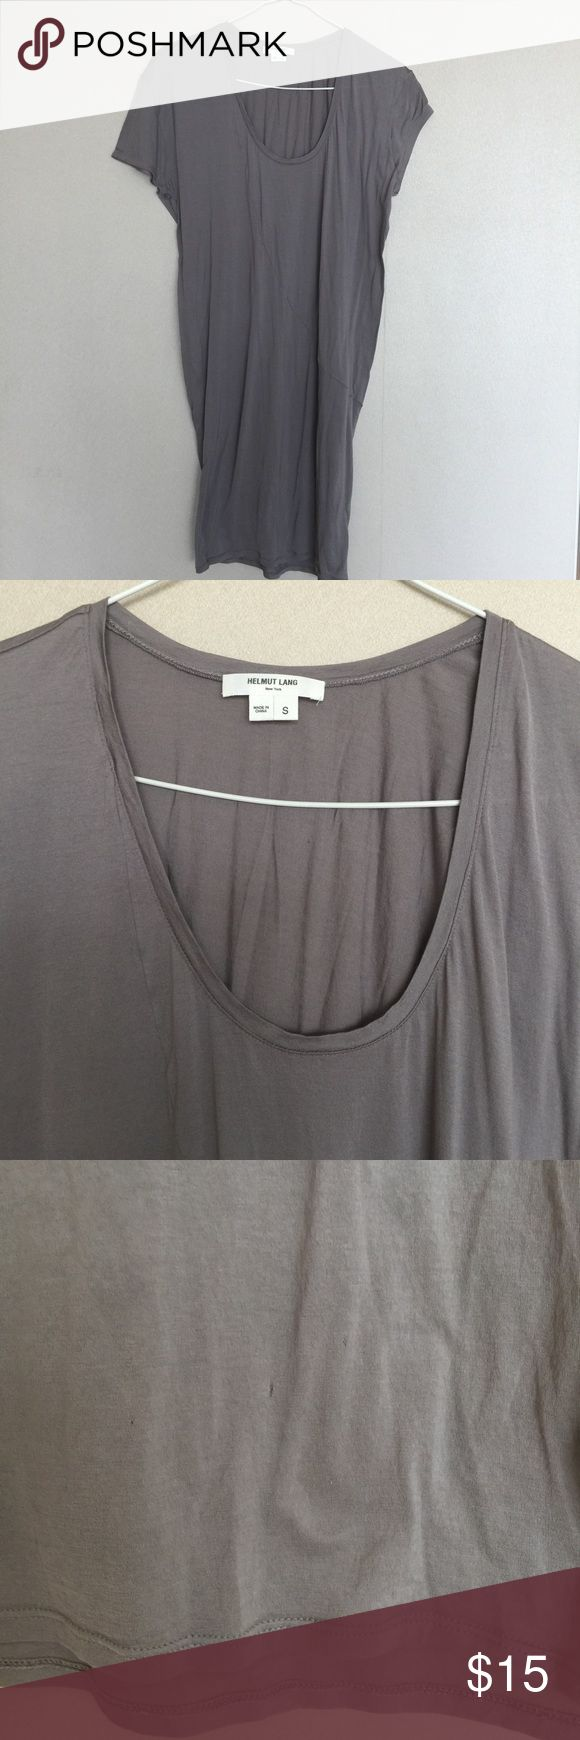 Helmut Lang T-shirt dress with slip Helmut Lang t-shirt dress in taupe/gray. Comes with white slip. Size small. There are three small snags at bottom front part of dress (see detail photo). This dress is cut slimmer at the bottom. 100% cotton. Helmut Lang Dresses Mini